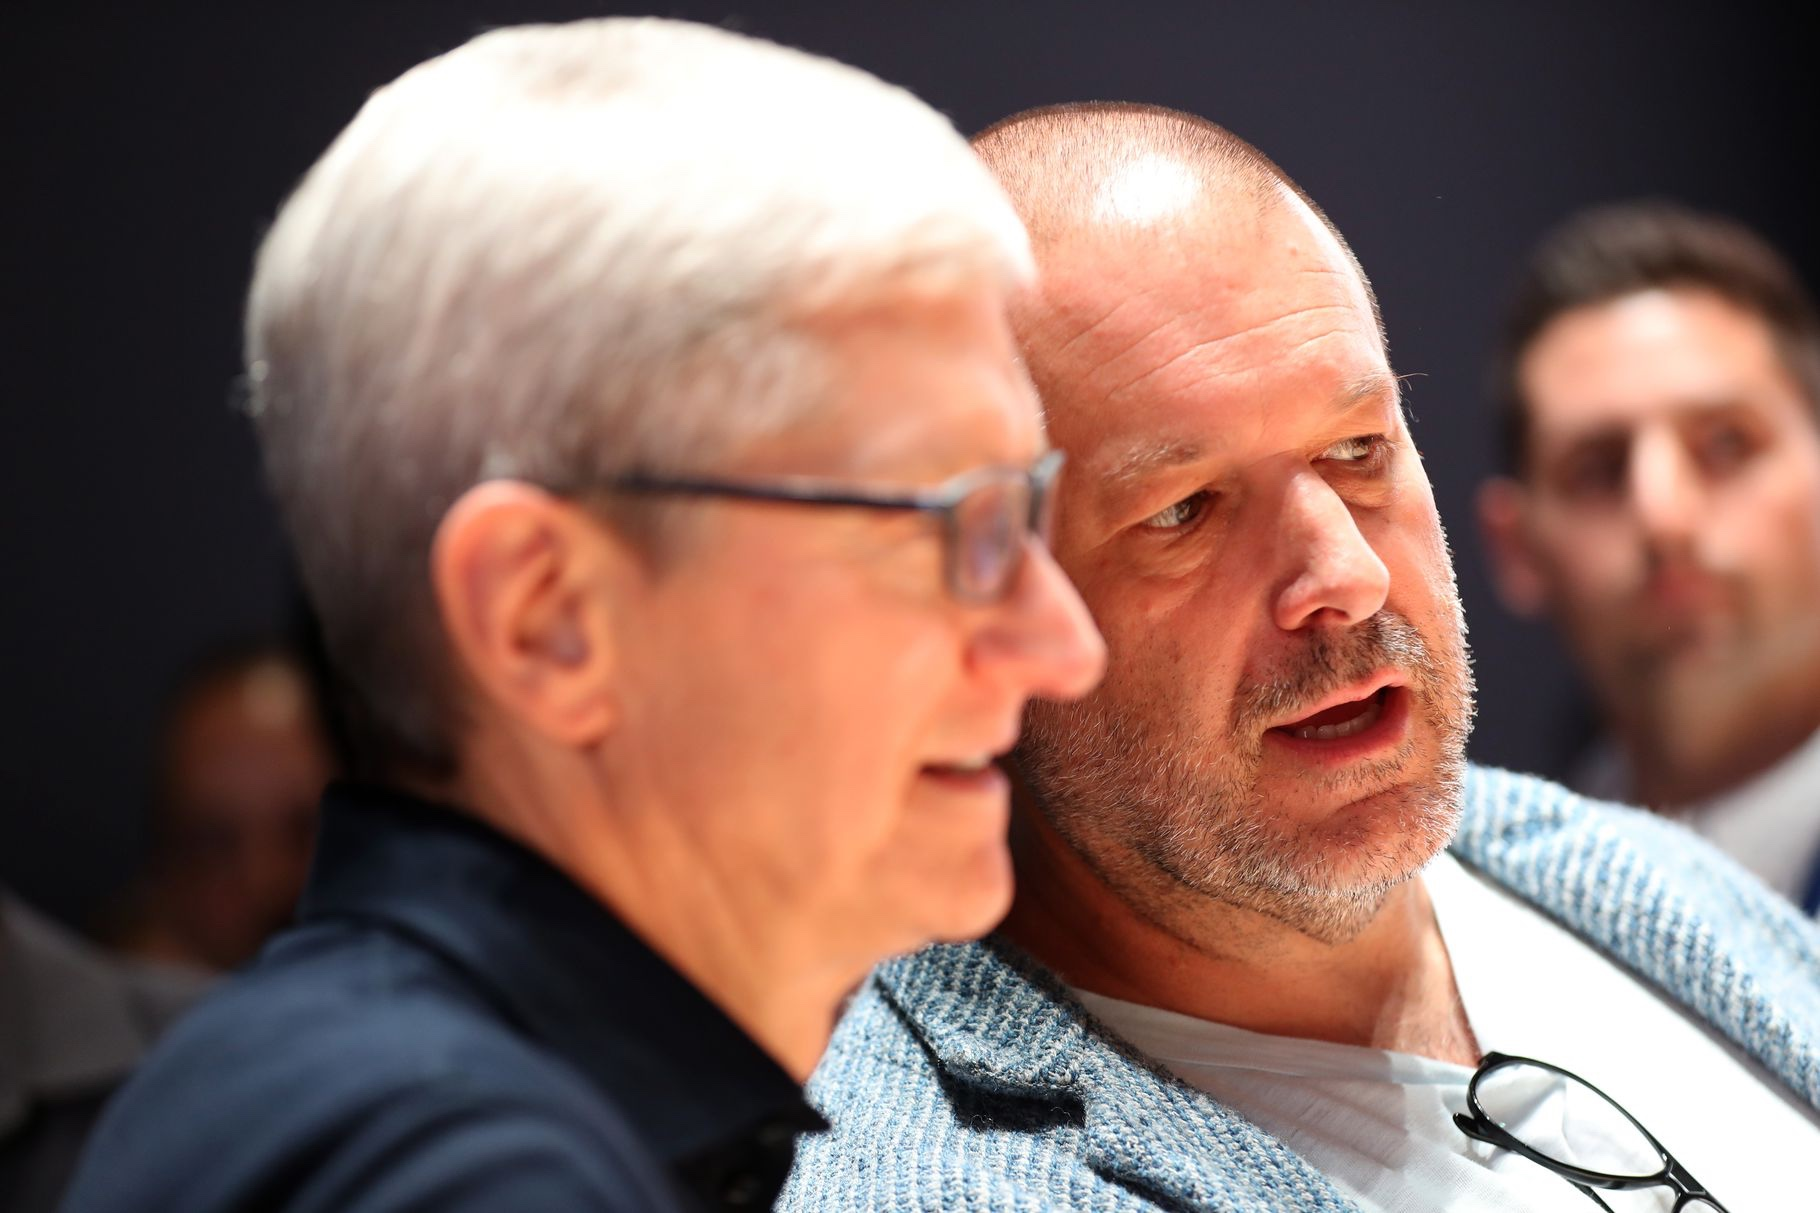 After nearly 30 years, Jony Ive leaving Apple to start new design firm